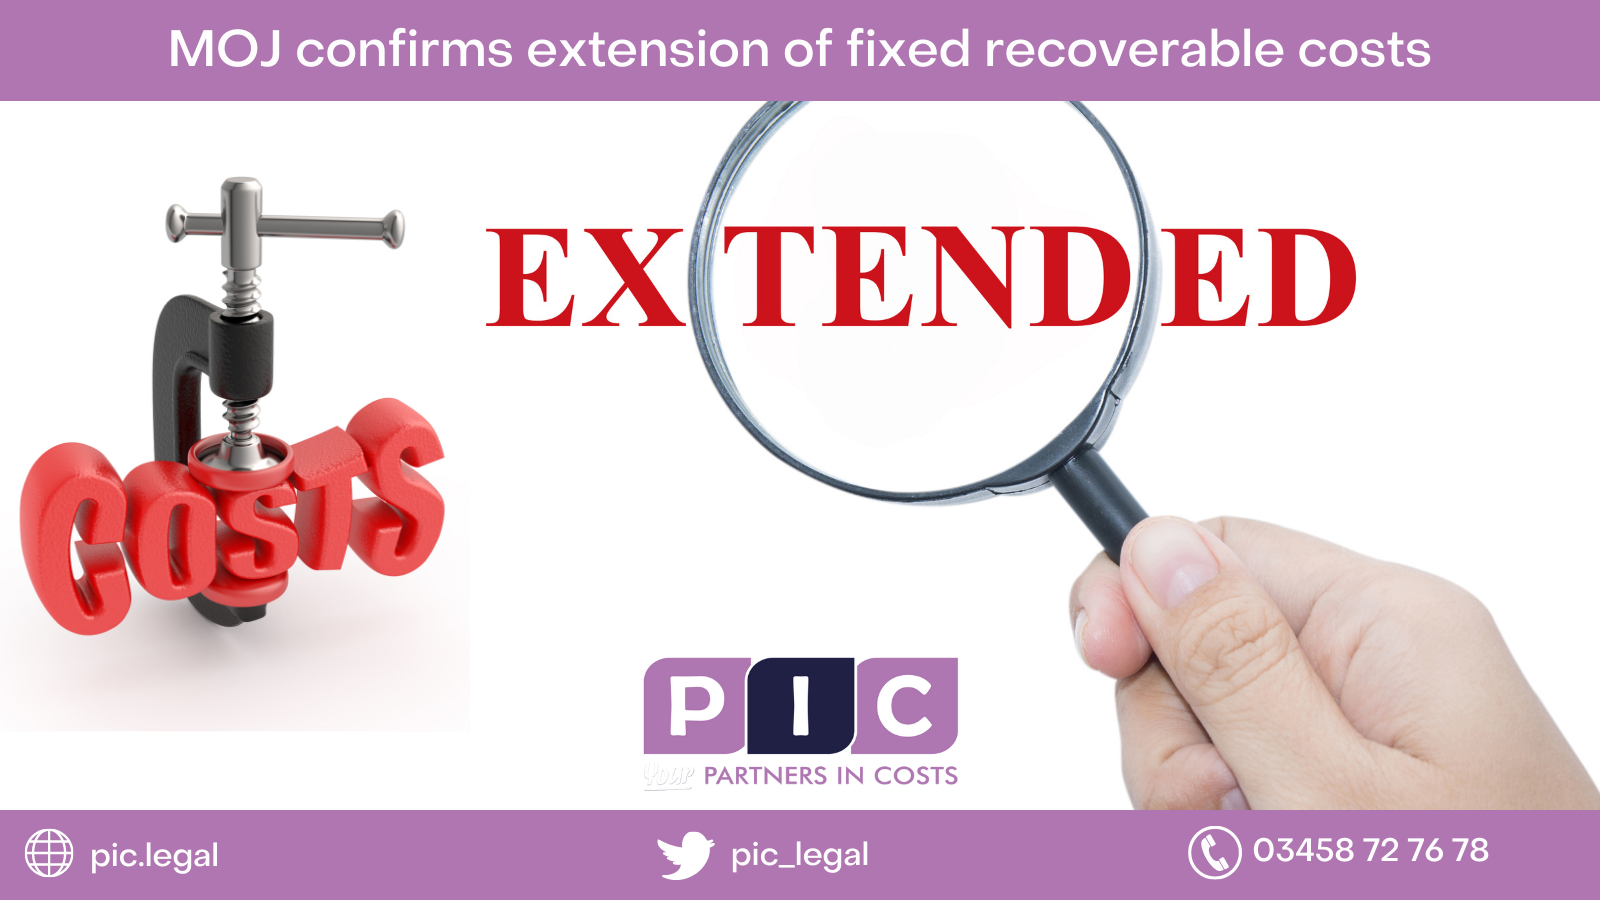 MoJ confirms extension of fixed recoverable costs